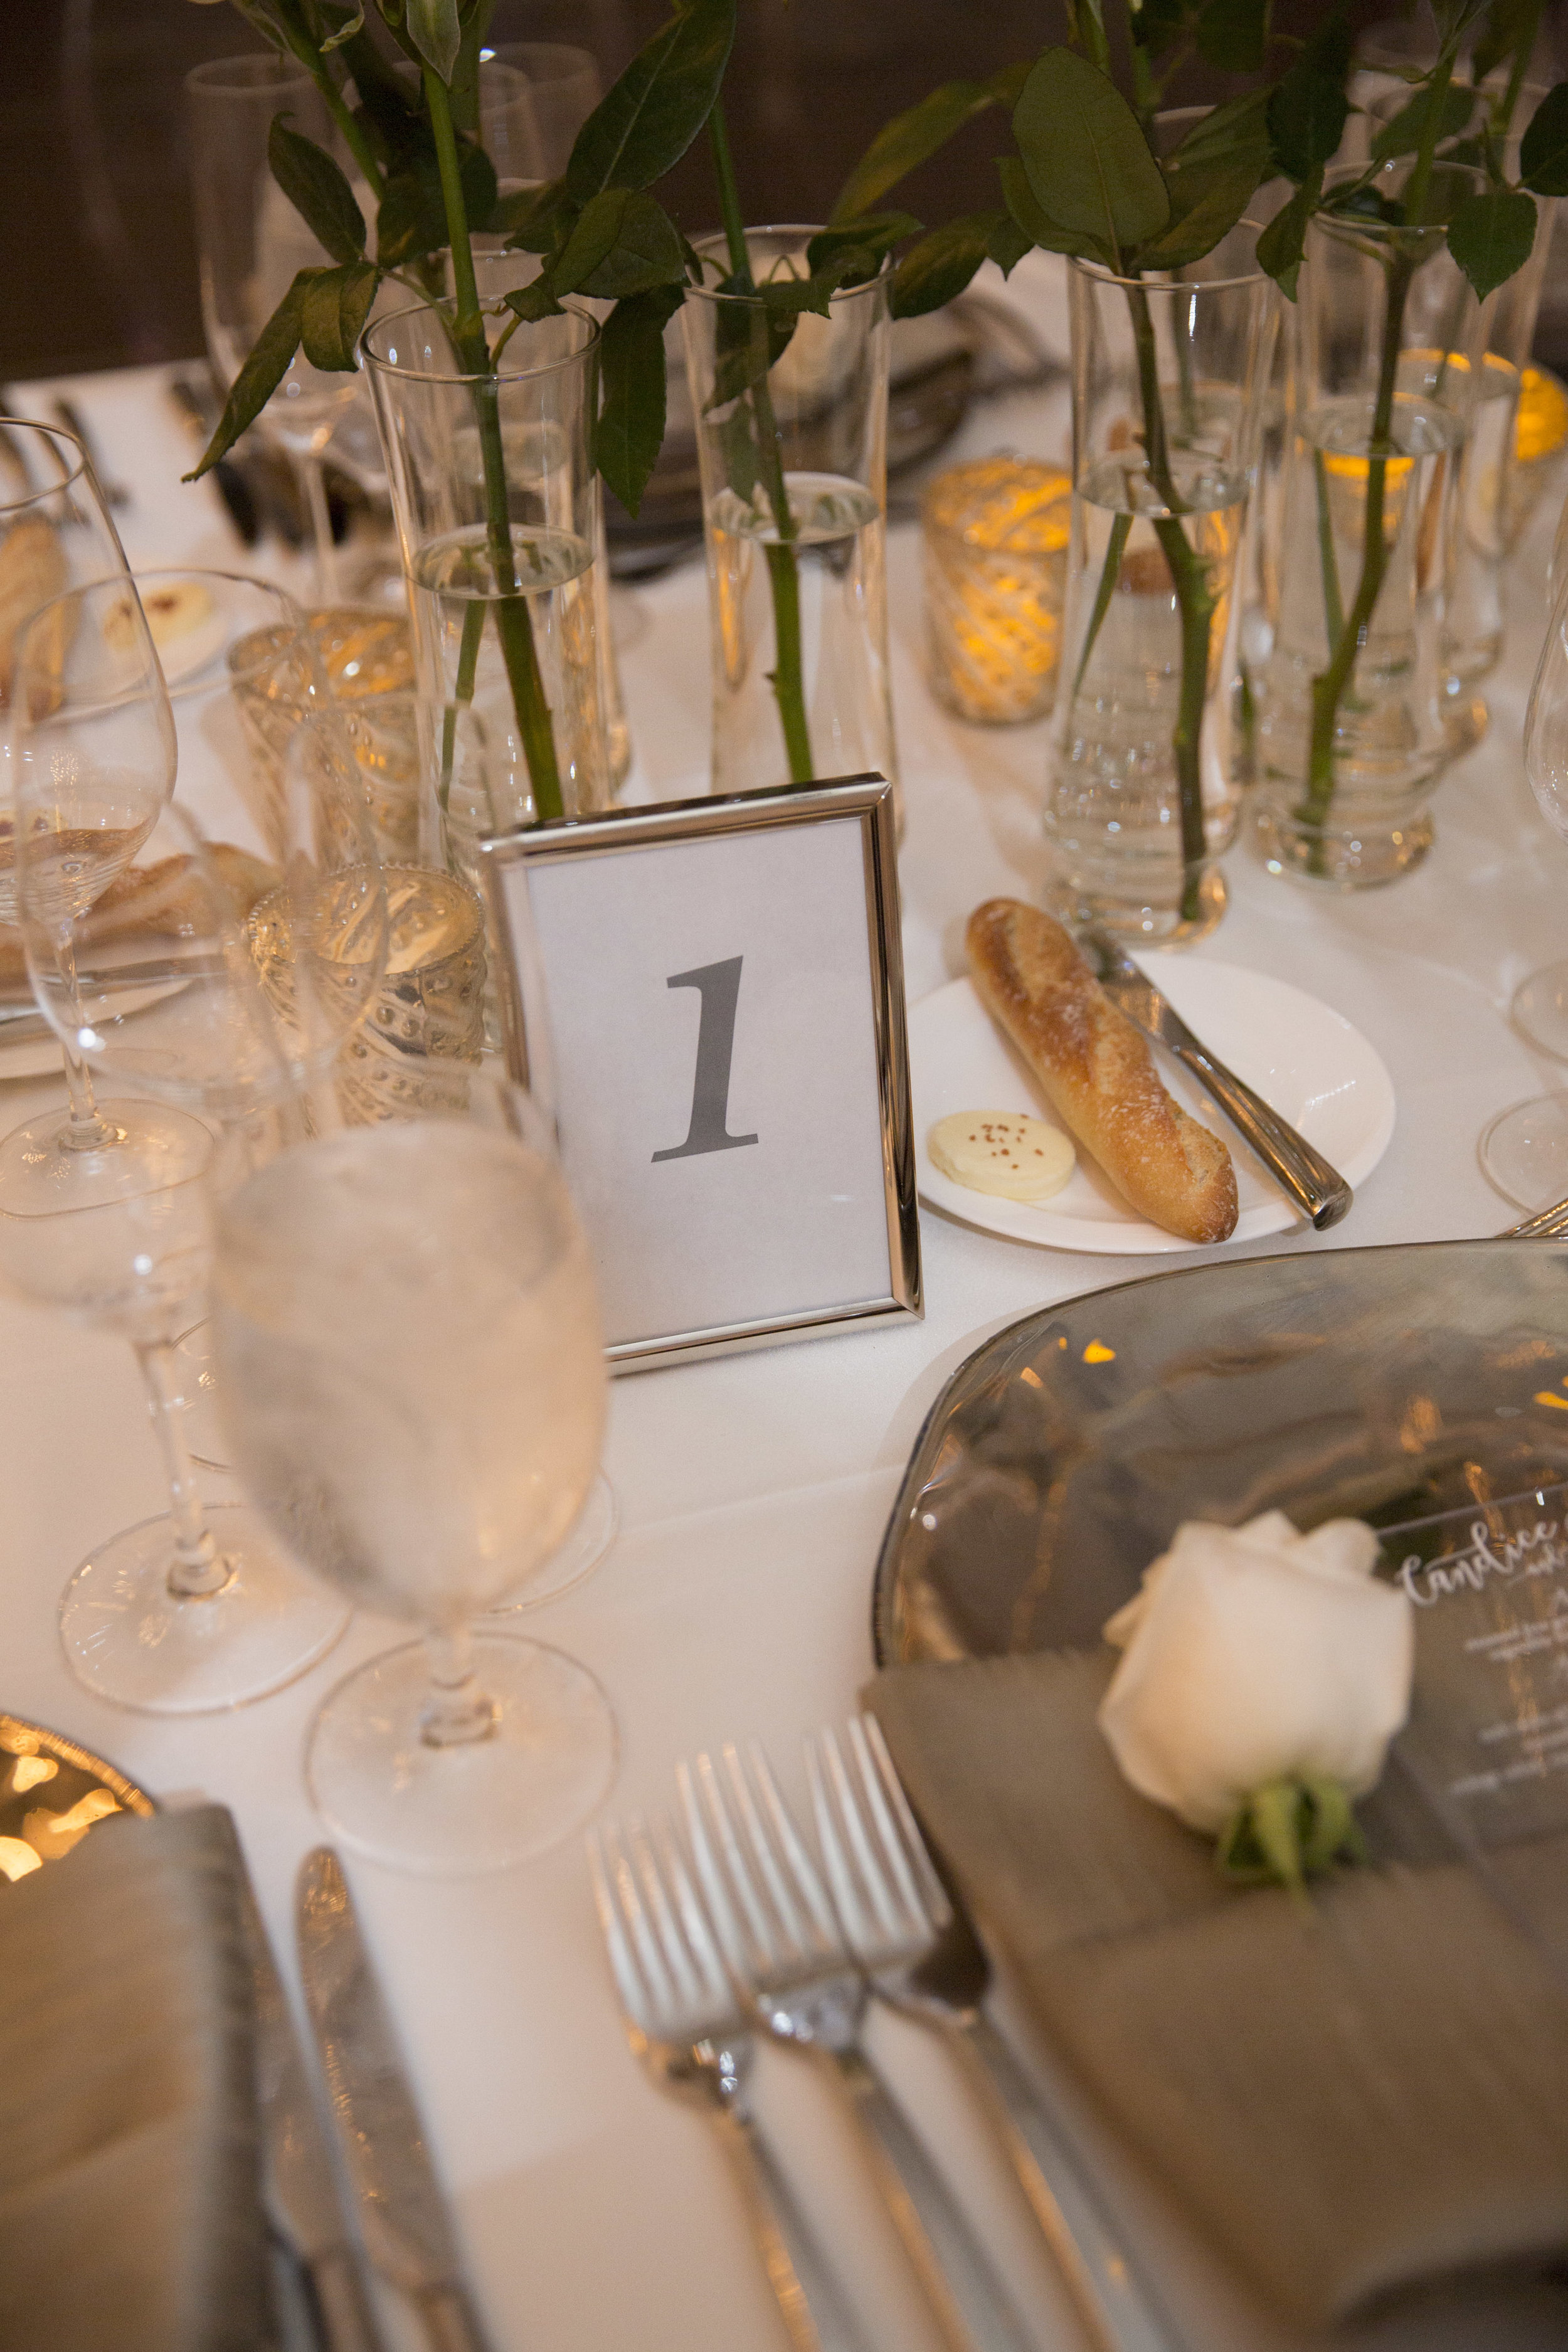 Clean silver table frames hold grey printed table numbers. White roses at each place setting. WEDDING PLANNING & EVENT DESIGN • Andrea Eppolito Events ,PHOTOGRAPHY • AltF Photography ,FLORAL AND DECOR DESIGN & PRODUCTION • Destinations by Design , CATERING • Mandarin Oriental Las Vegas , COCKTAILS •  The Grand Bevy , WEDDING GOWN •  Galia Lahav ,SHOES •  Jimmy Choo , ACRYLIC MENUS & SEATING CHART•  She Paperie